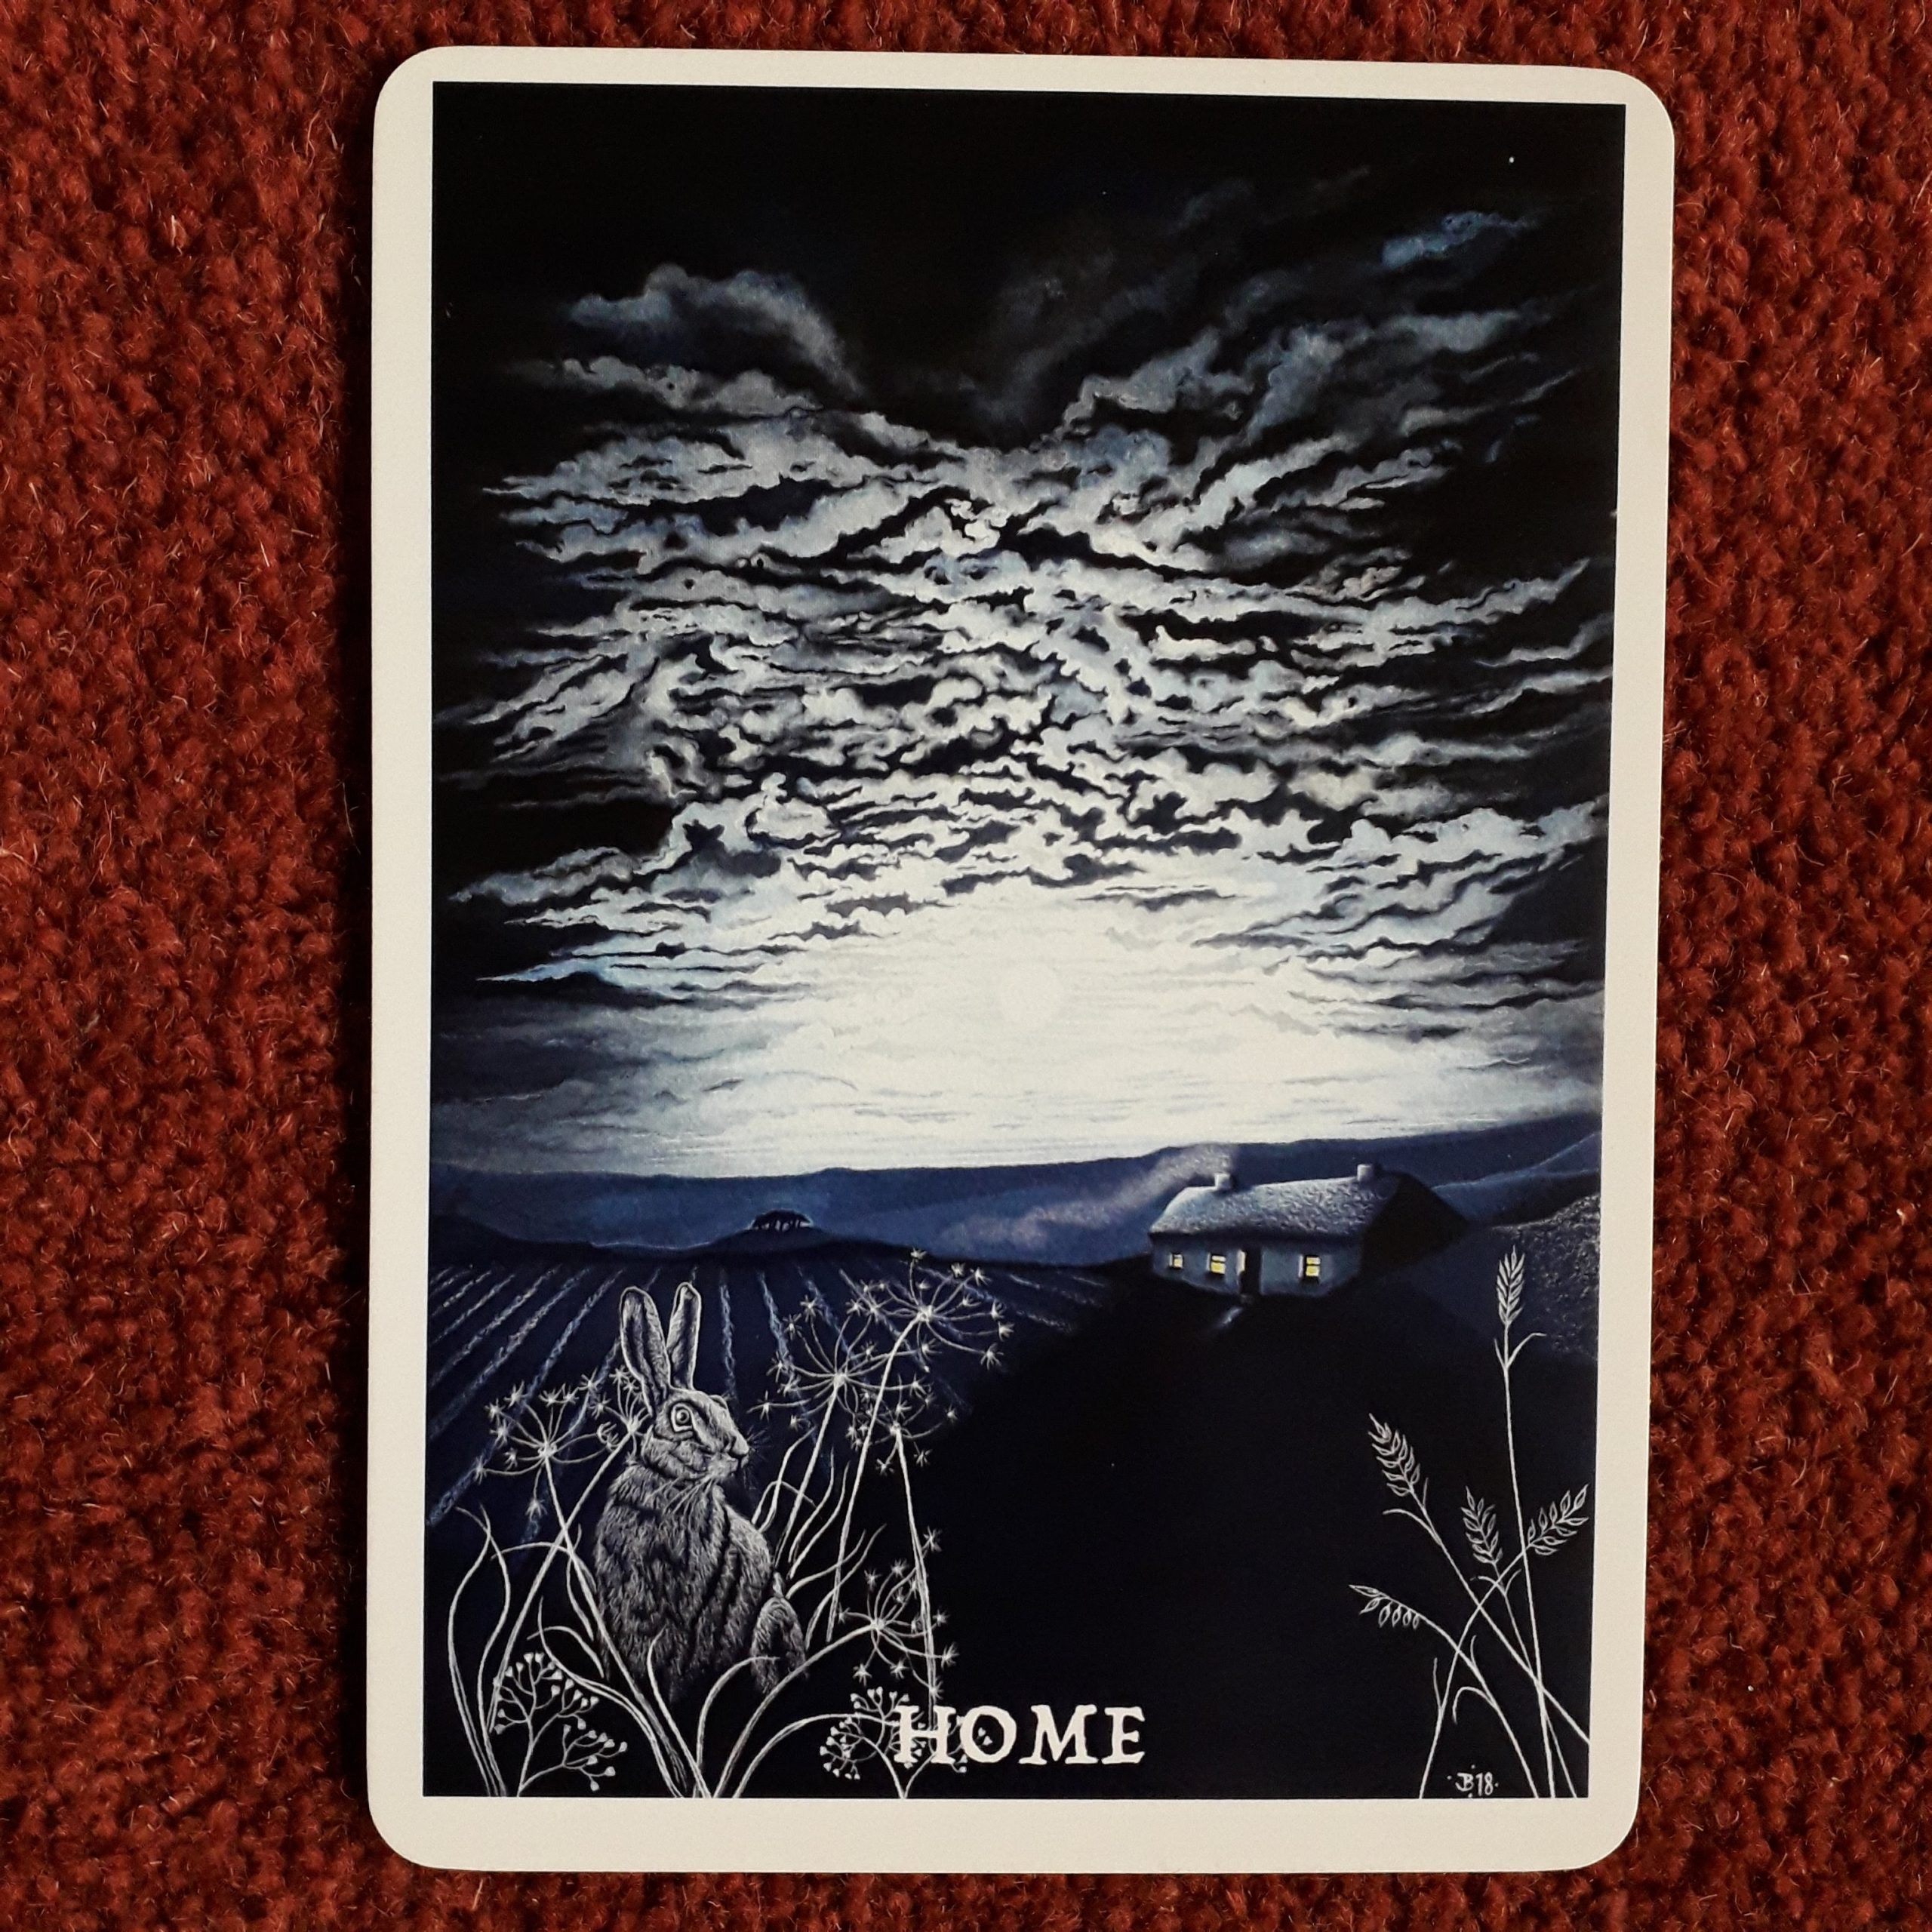 Home card from Wisdom of the Cailleach by Jane Brideson